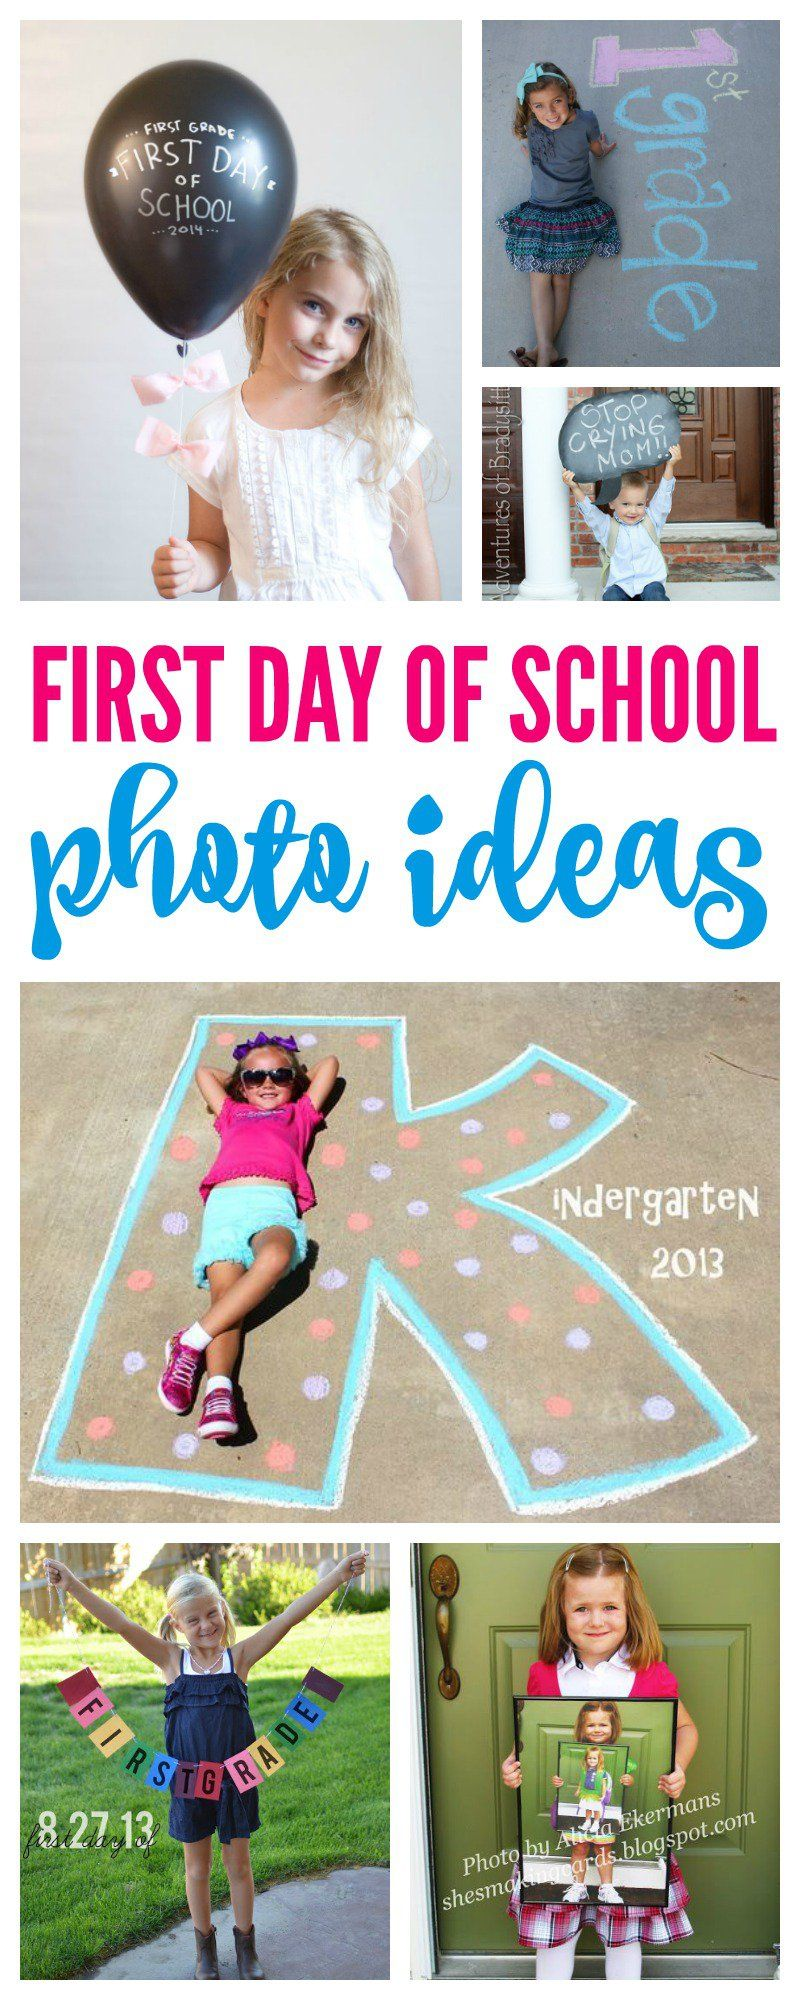 First Day of School Photo Ideas Pinterest #firstdayofschoolsign